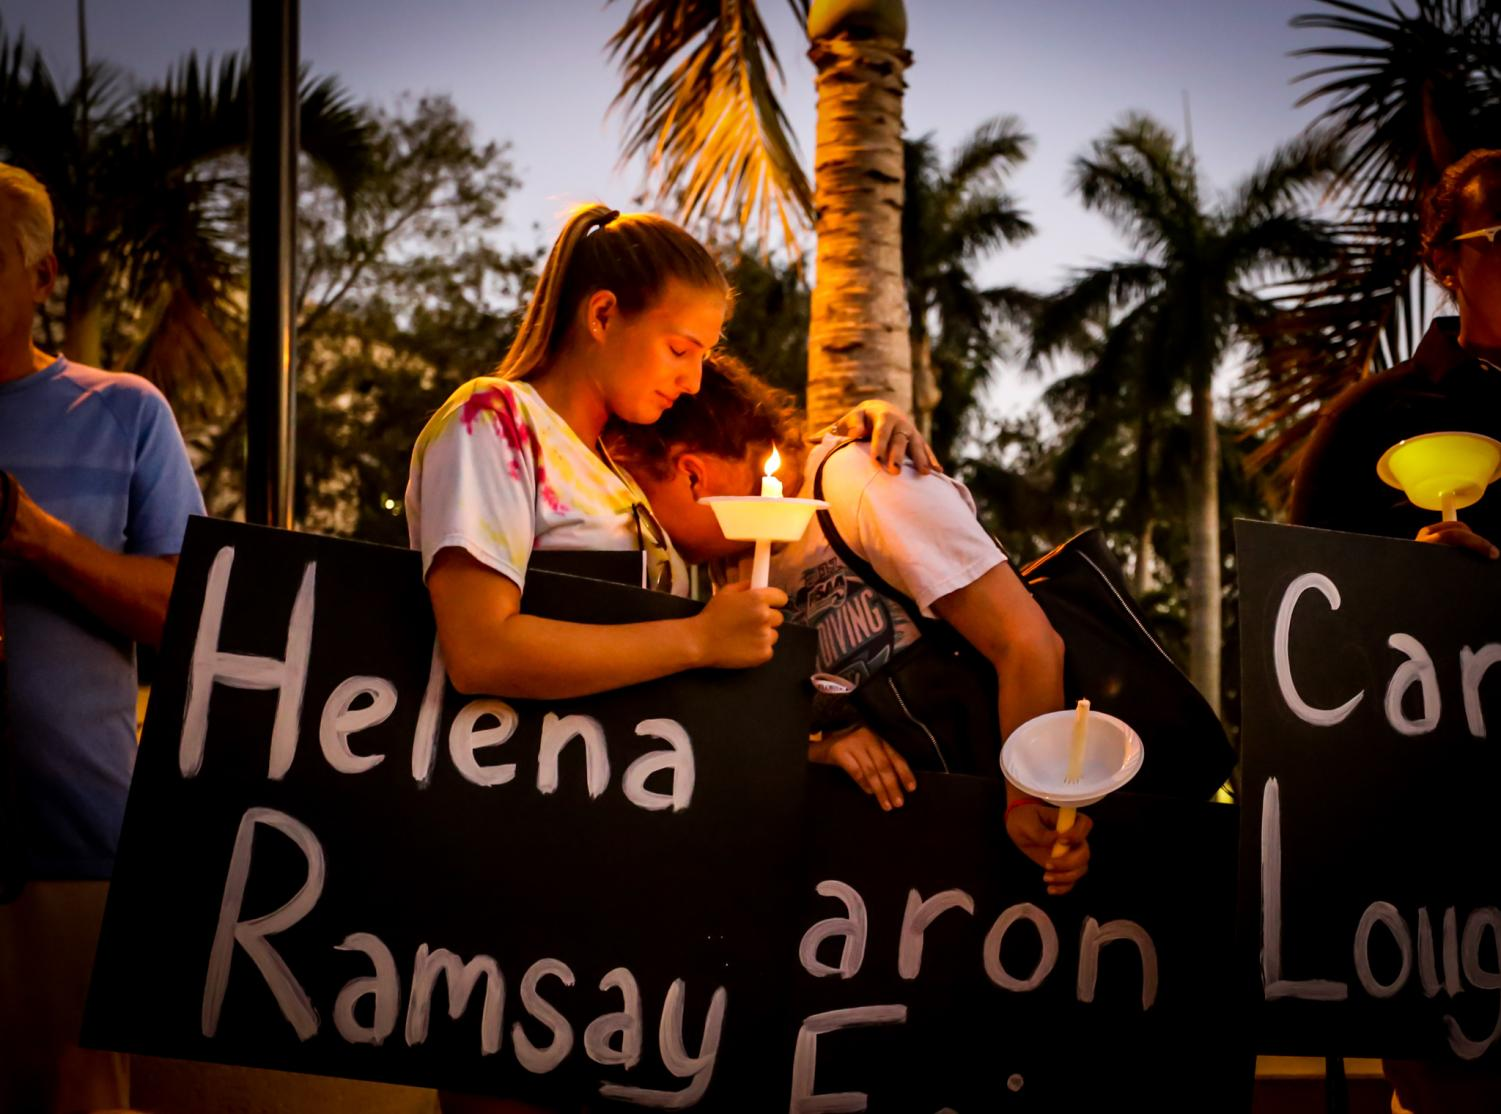 22-year-old graduate student Tori Sletzer, left, holds her friend Taylor Miller, a junior elementary education major, right, during a prayer at the candlelight vigil. Both students attended Marjory Douglas High School and knew the football coach, Aaron Feis, who died shielding other students from gunfire. | Alexander Rodriguez